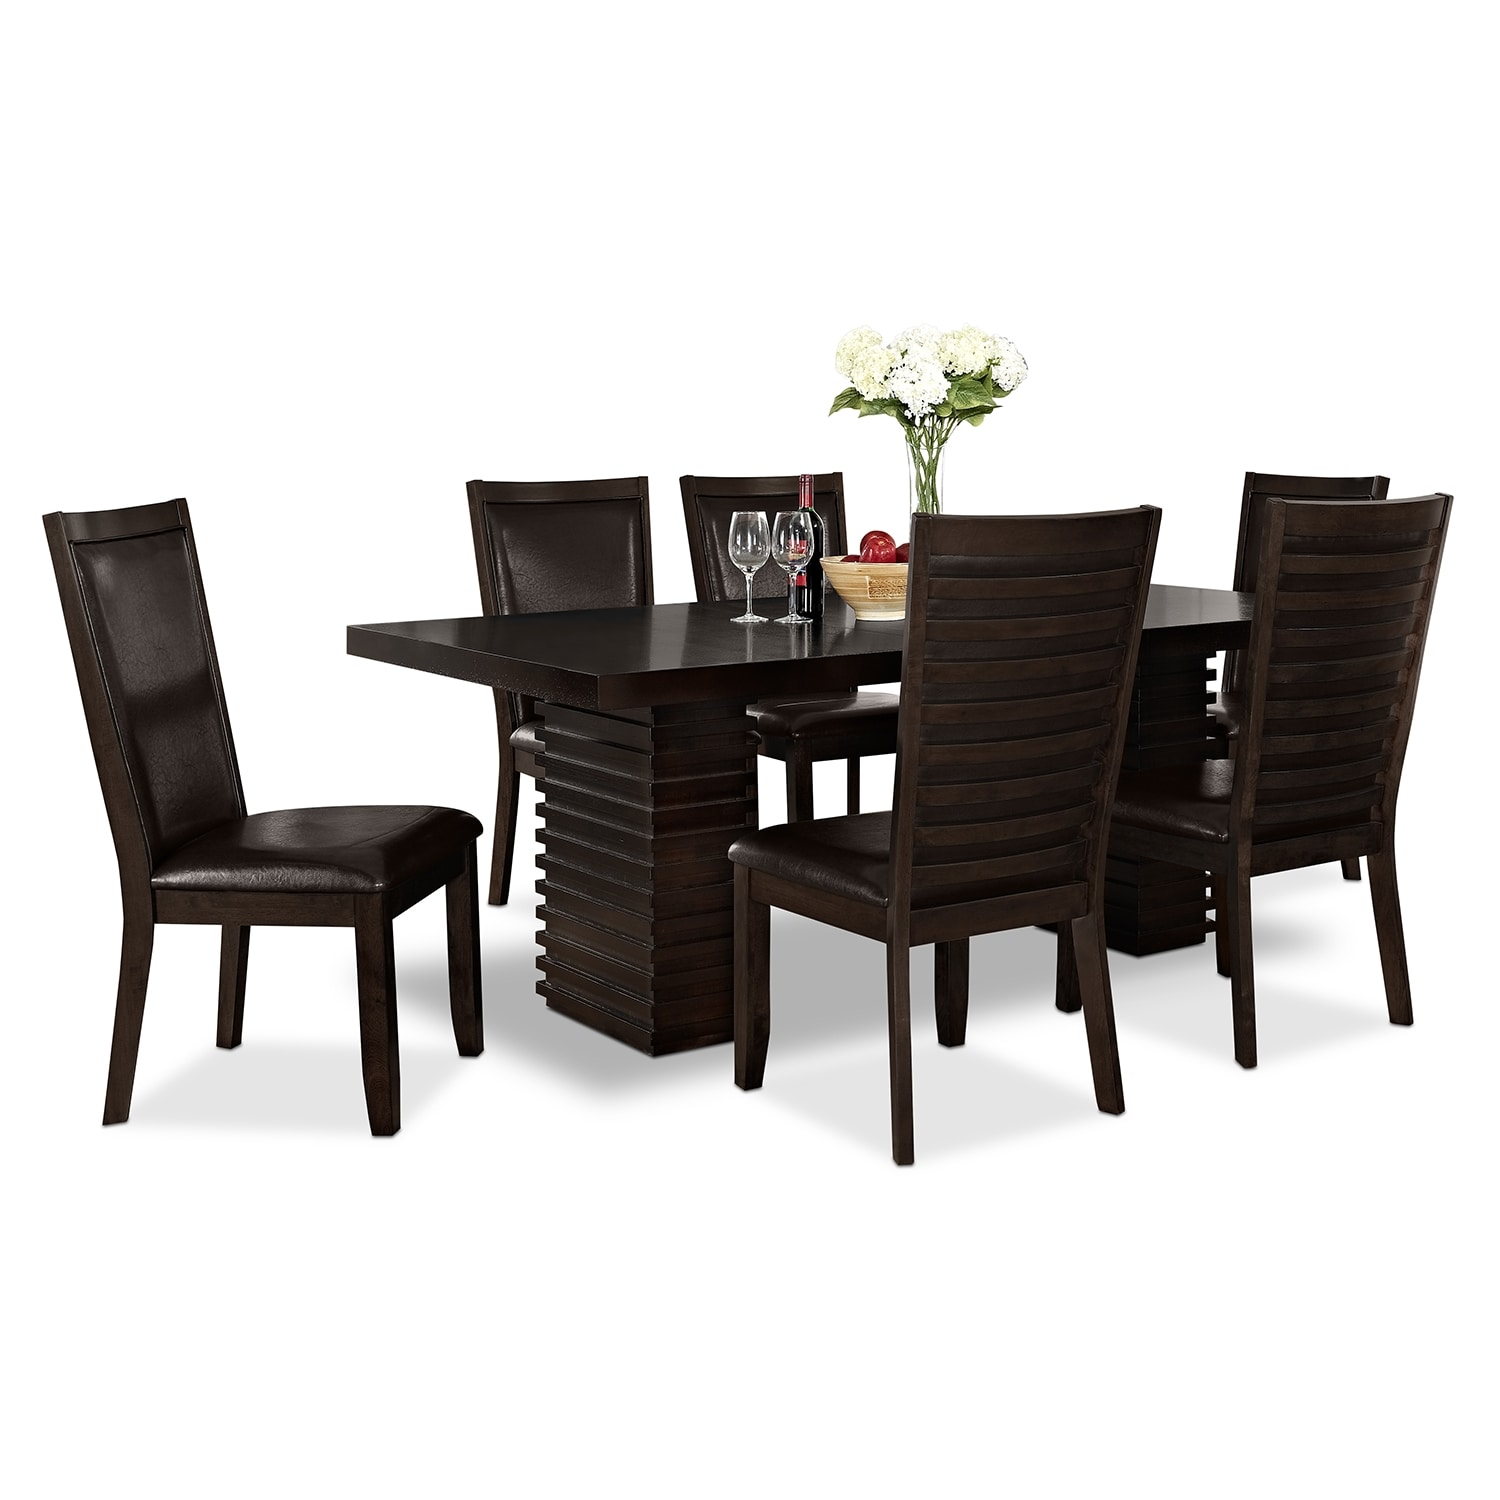 Marvelous Paragon Table And 6 Chairs   Merlot And Brown Part 25